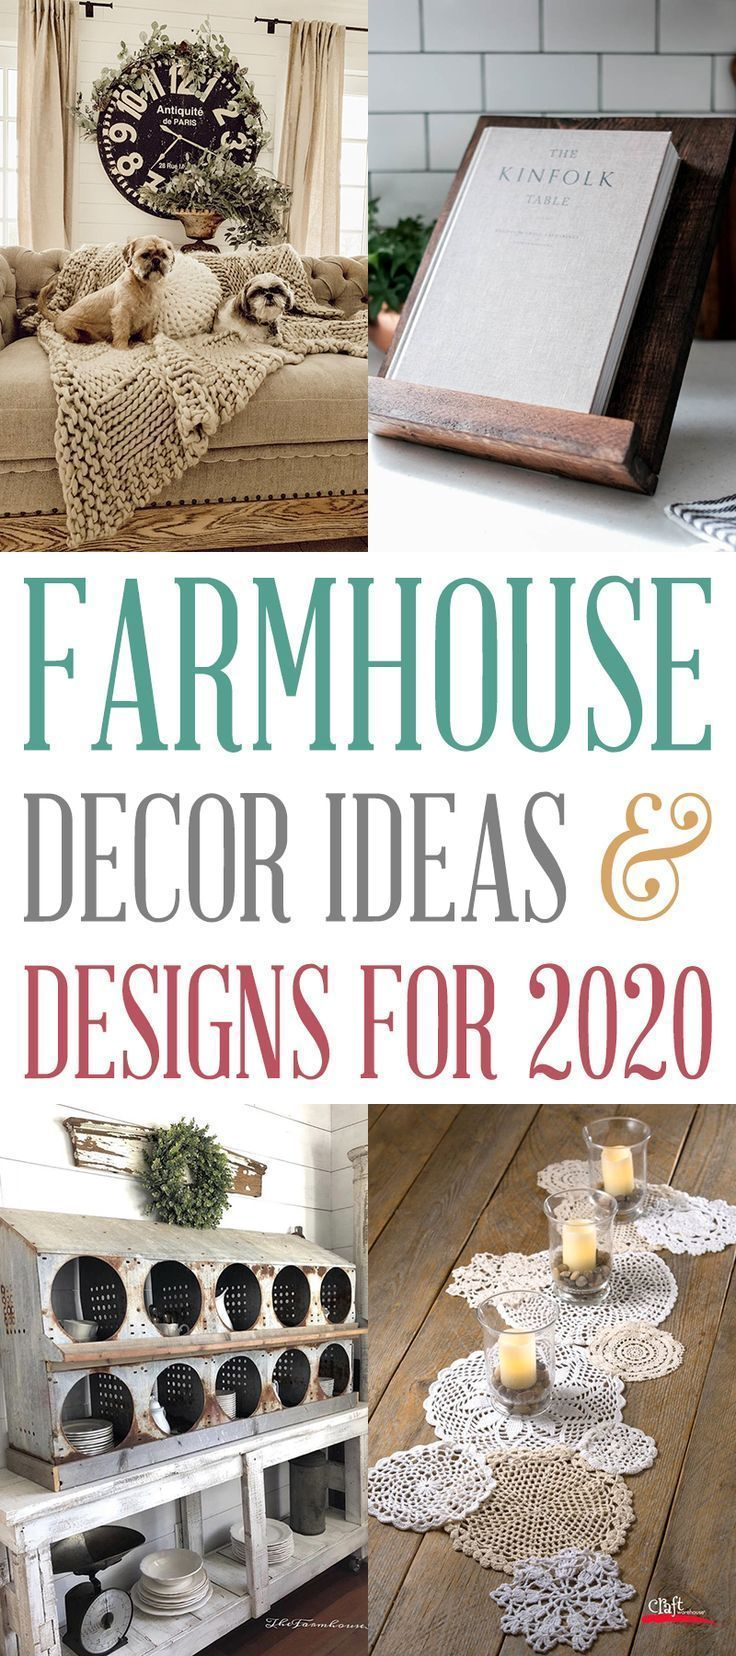 Farmhouse Decor Ideas and Designs for 2020   The Cottage ...